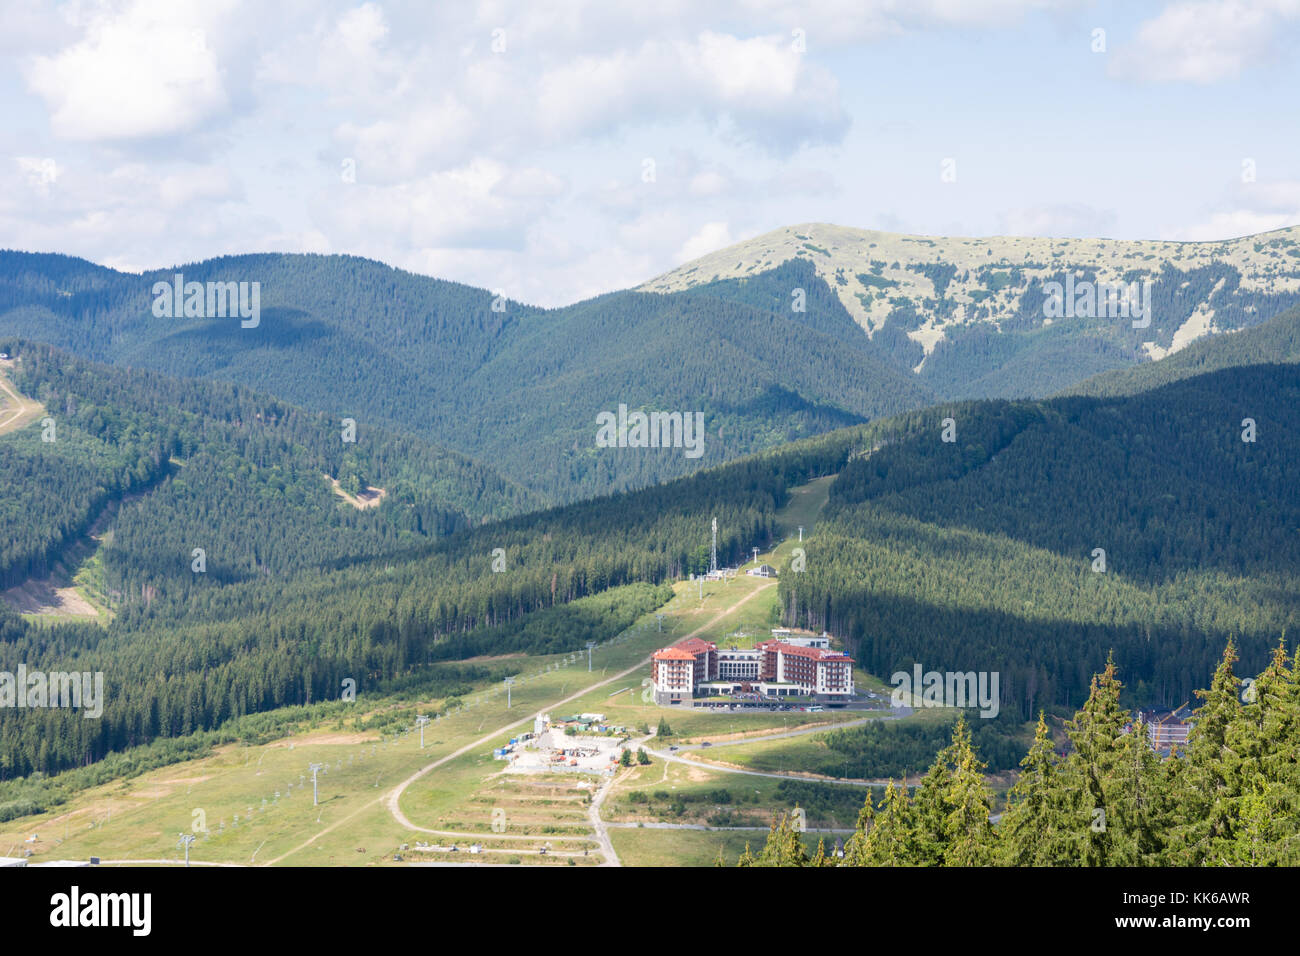 Mountains of the Carpathians against the blue sky covered with greenery resort - Stock Image